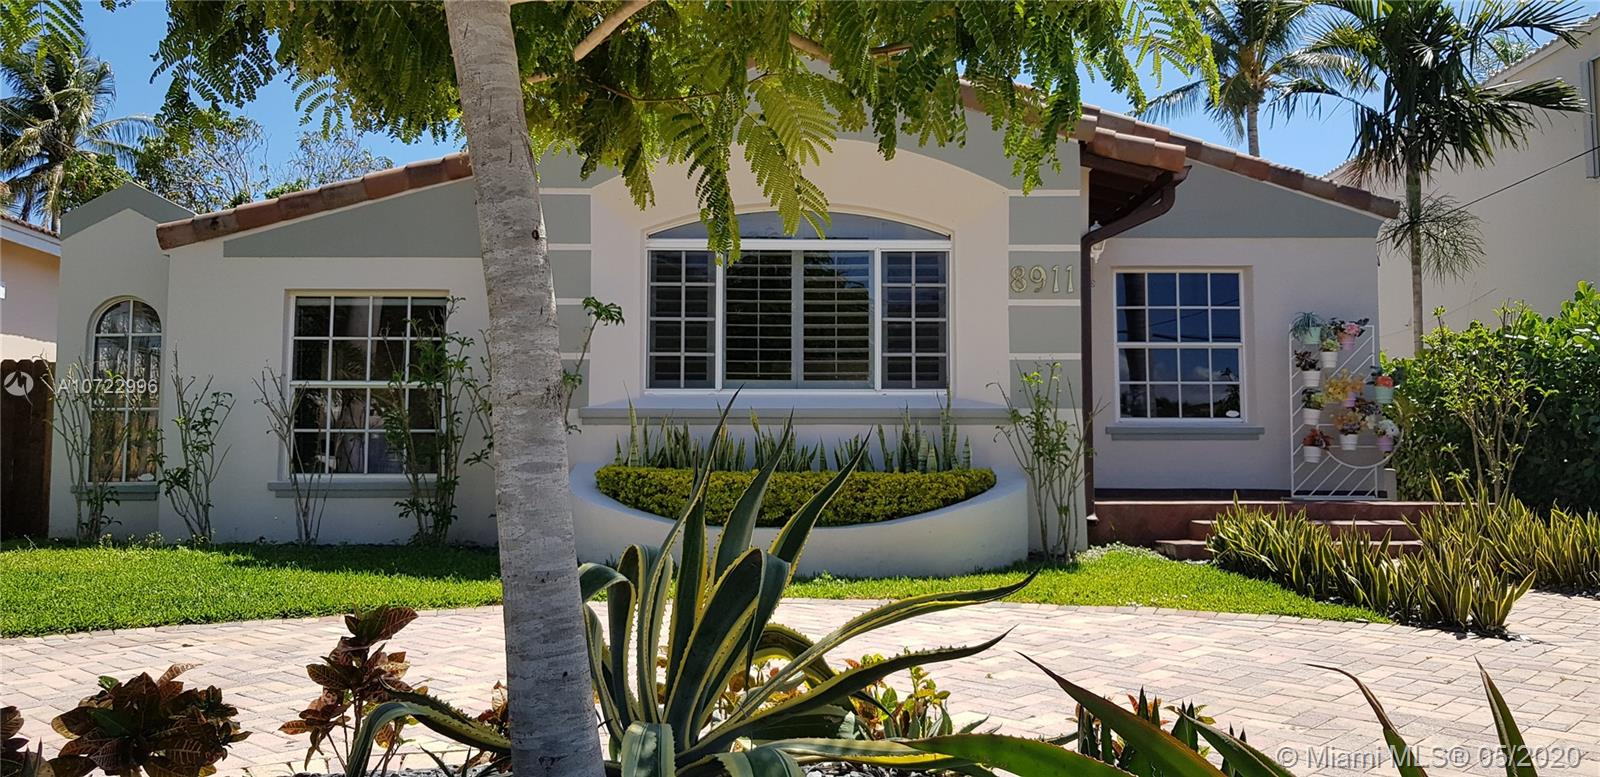 8911  Byron Ave  For Sale A10722996, FL